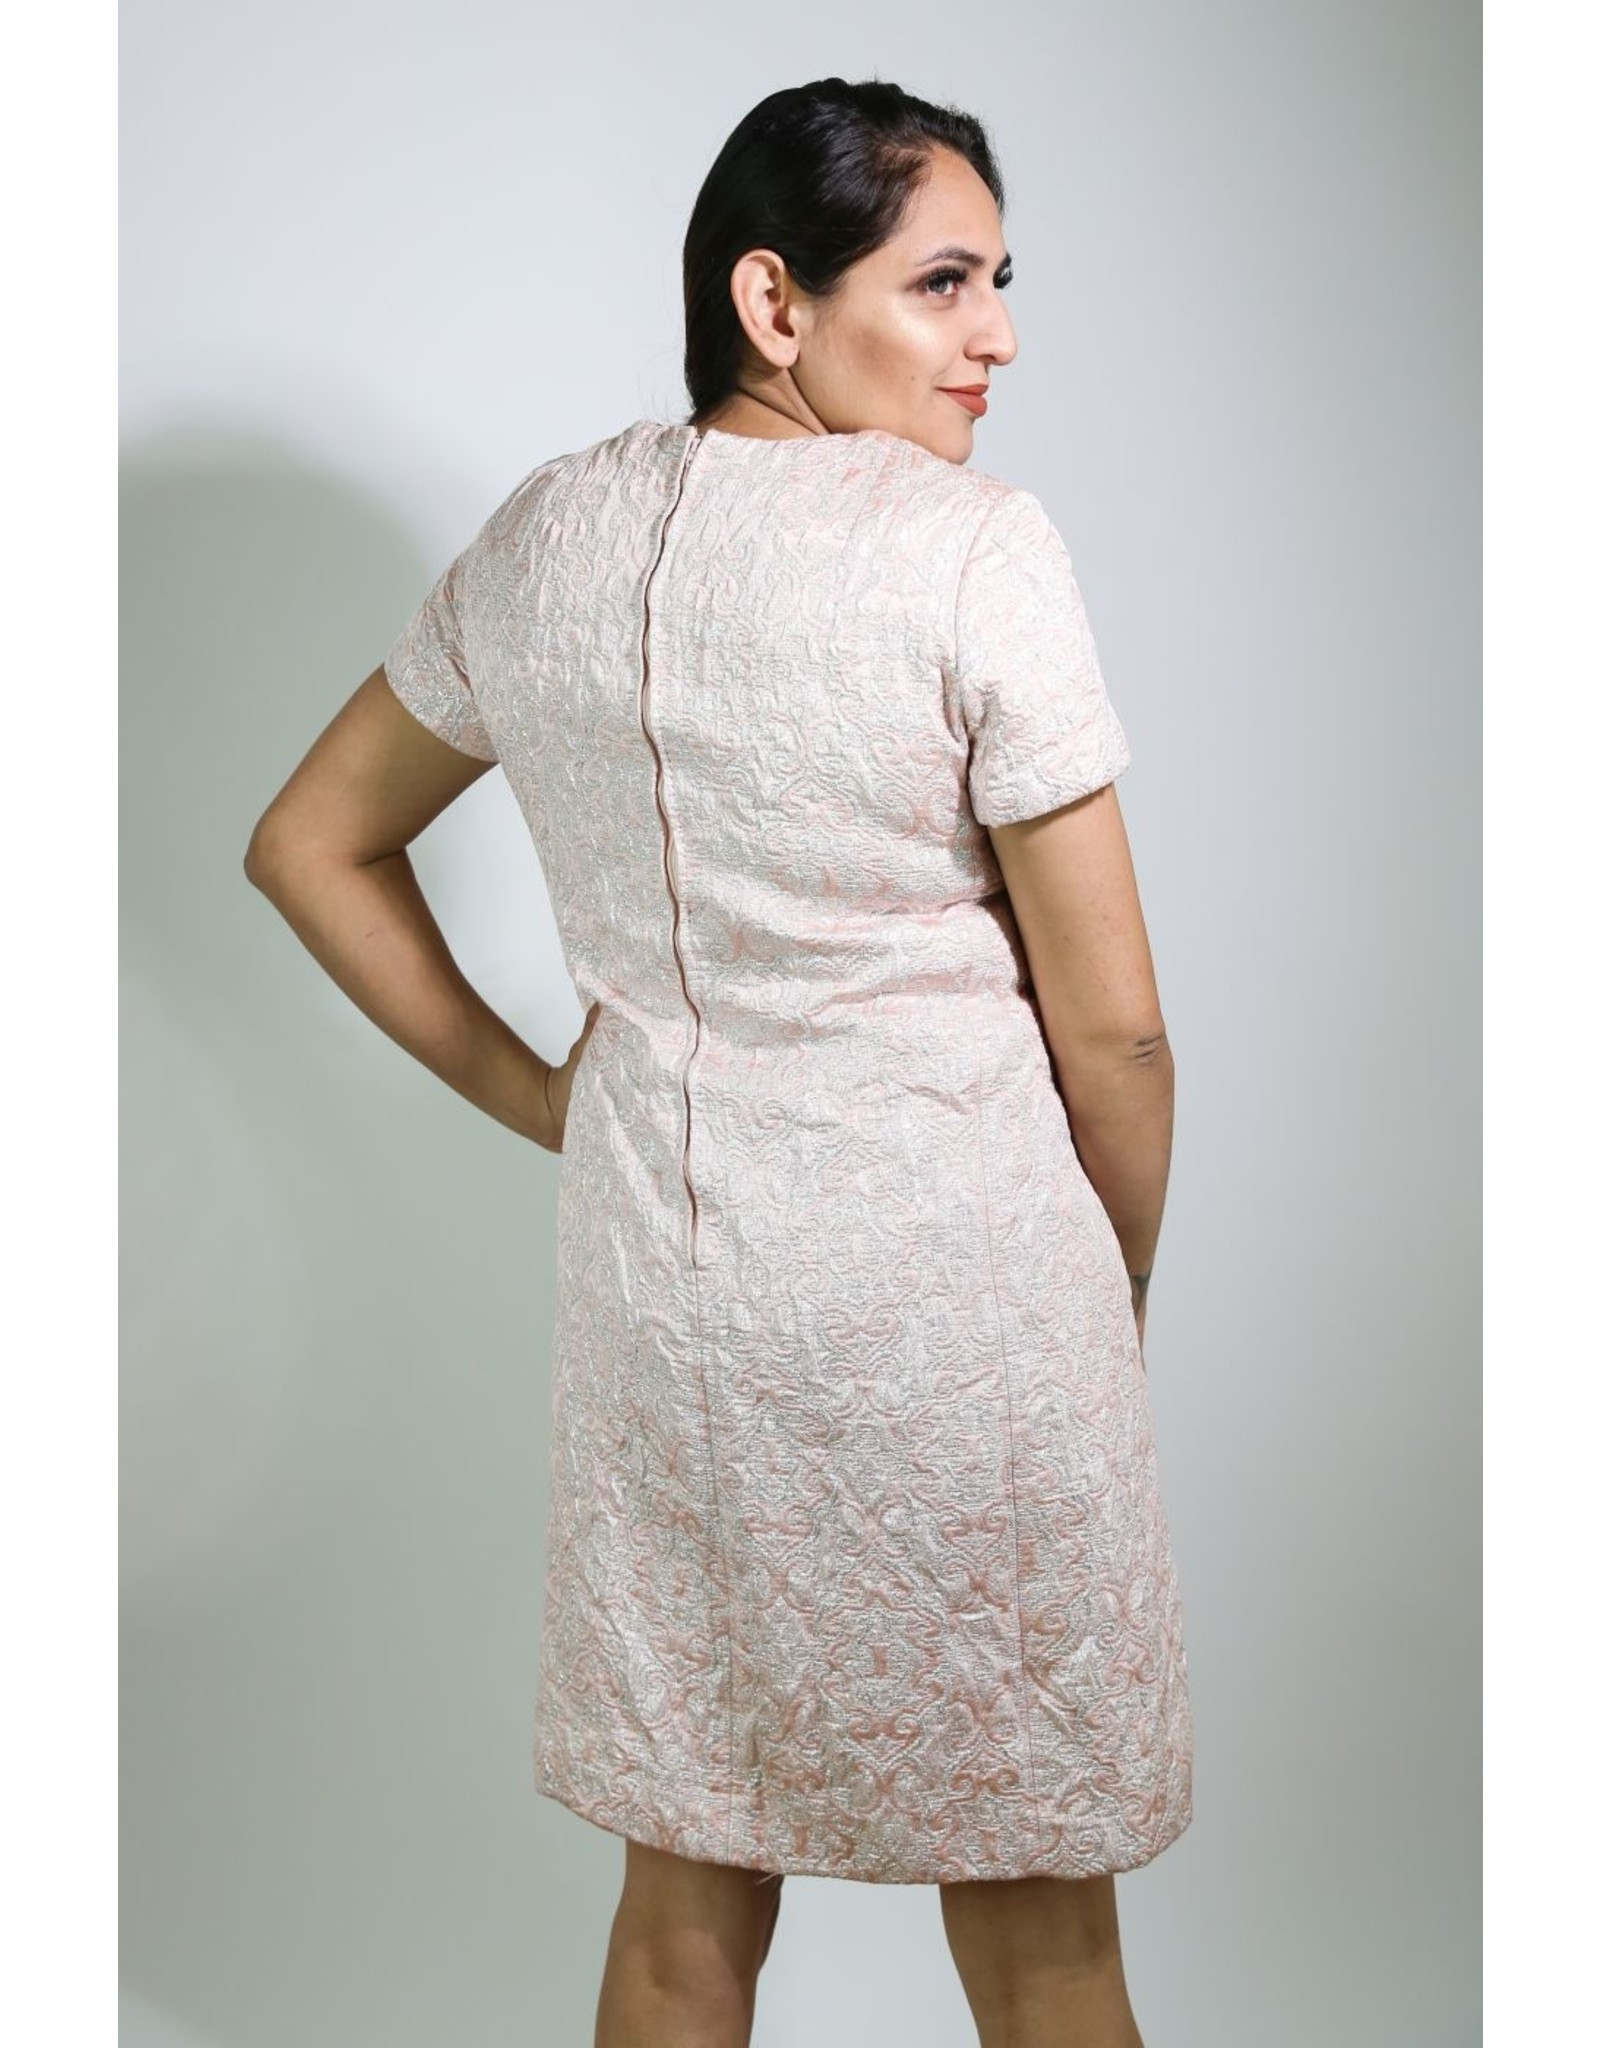 1960's Plus Size Pink & Silver Party Dress